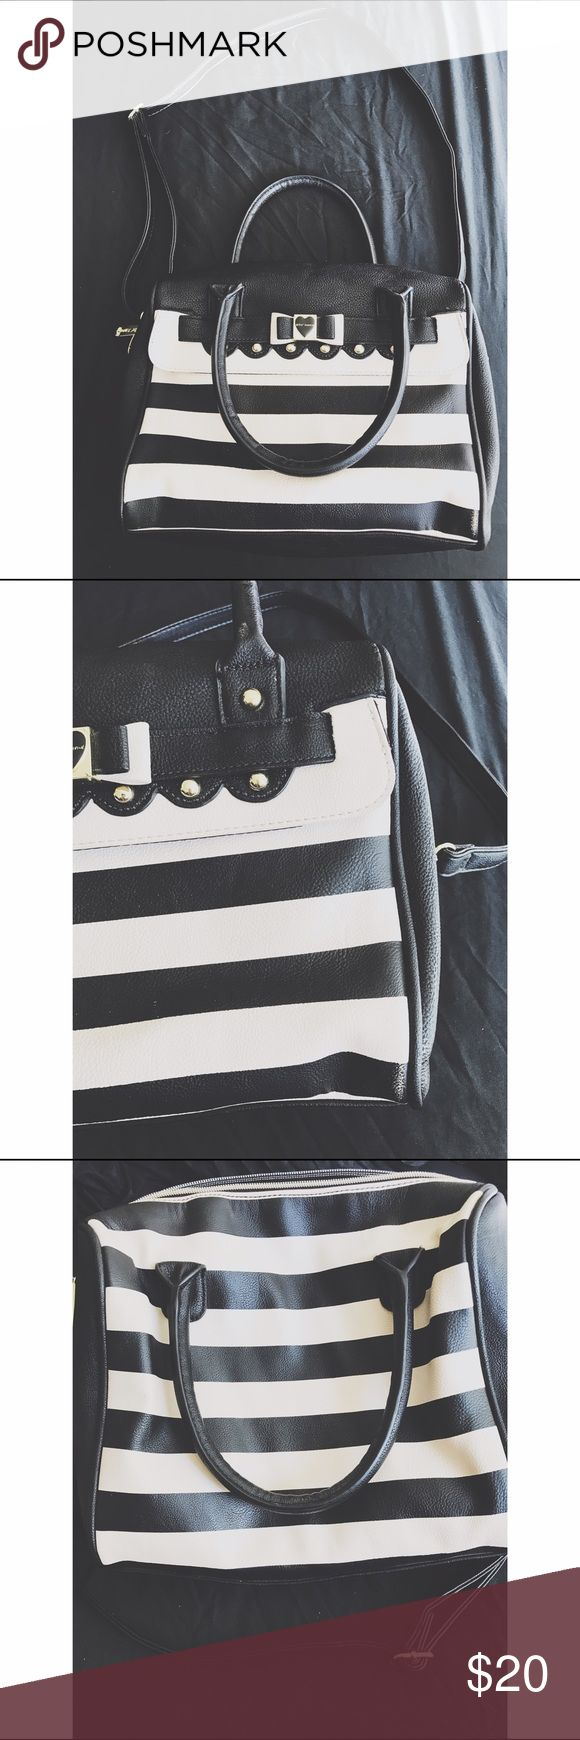 Betsey Johnson Striped Purse ⇻◈Brand: Betsey Johnson  ⇻◈Size: Medium sized purse  ⇻◈Condition: ***It has a few minor flaws as indicated in the second picture on the bottom right corner. Nothing major but want to disclose. Otherwise, perfect condition. No wear in the inside.  ⇻◈Thank you for viewing! If you have any additional questions, please comment below! Betsey Johnson Bags Crossbody Bags